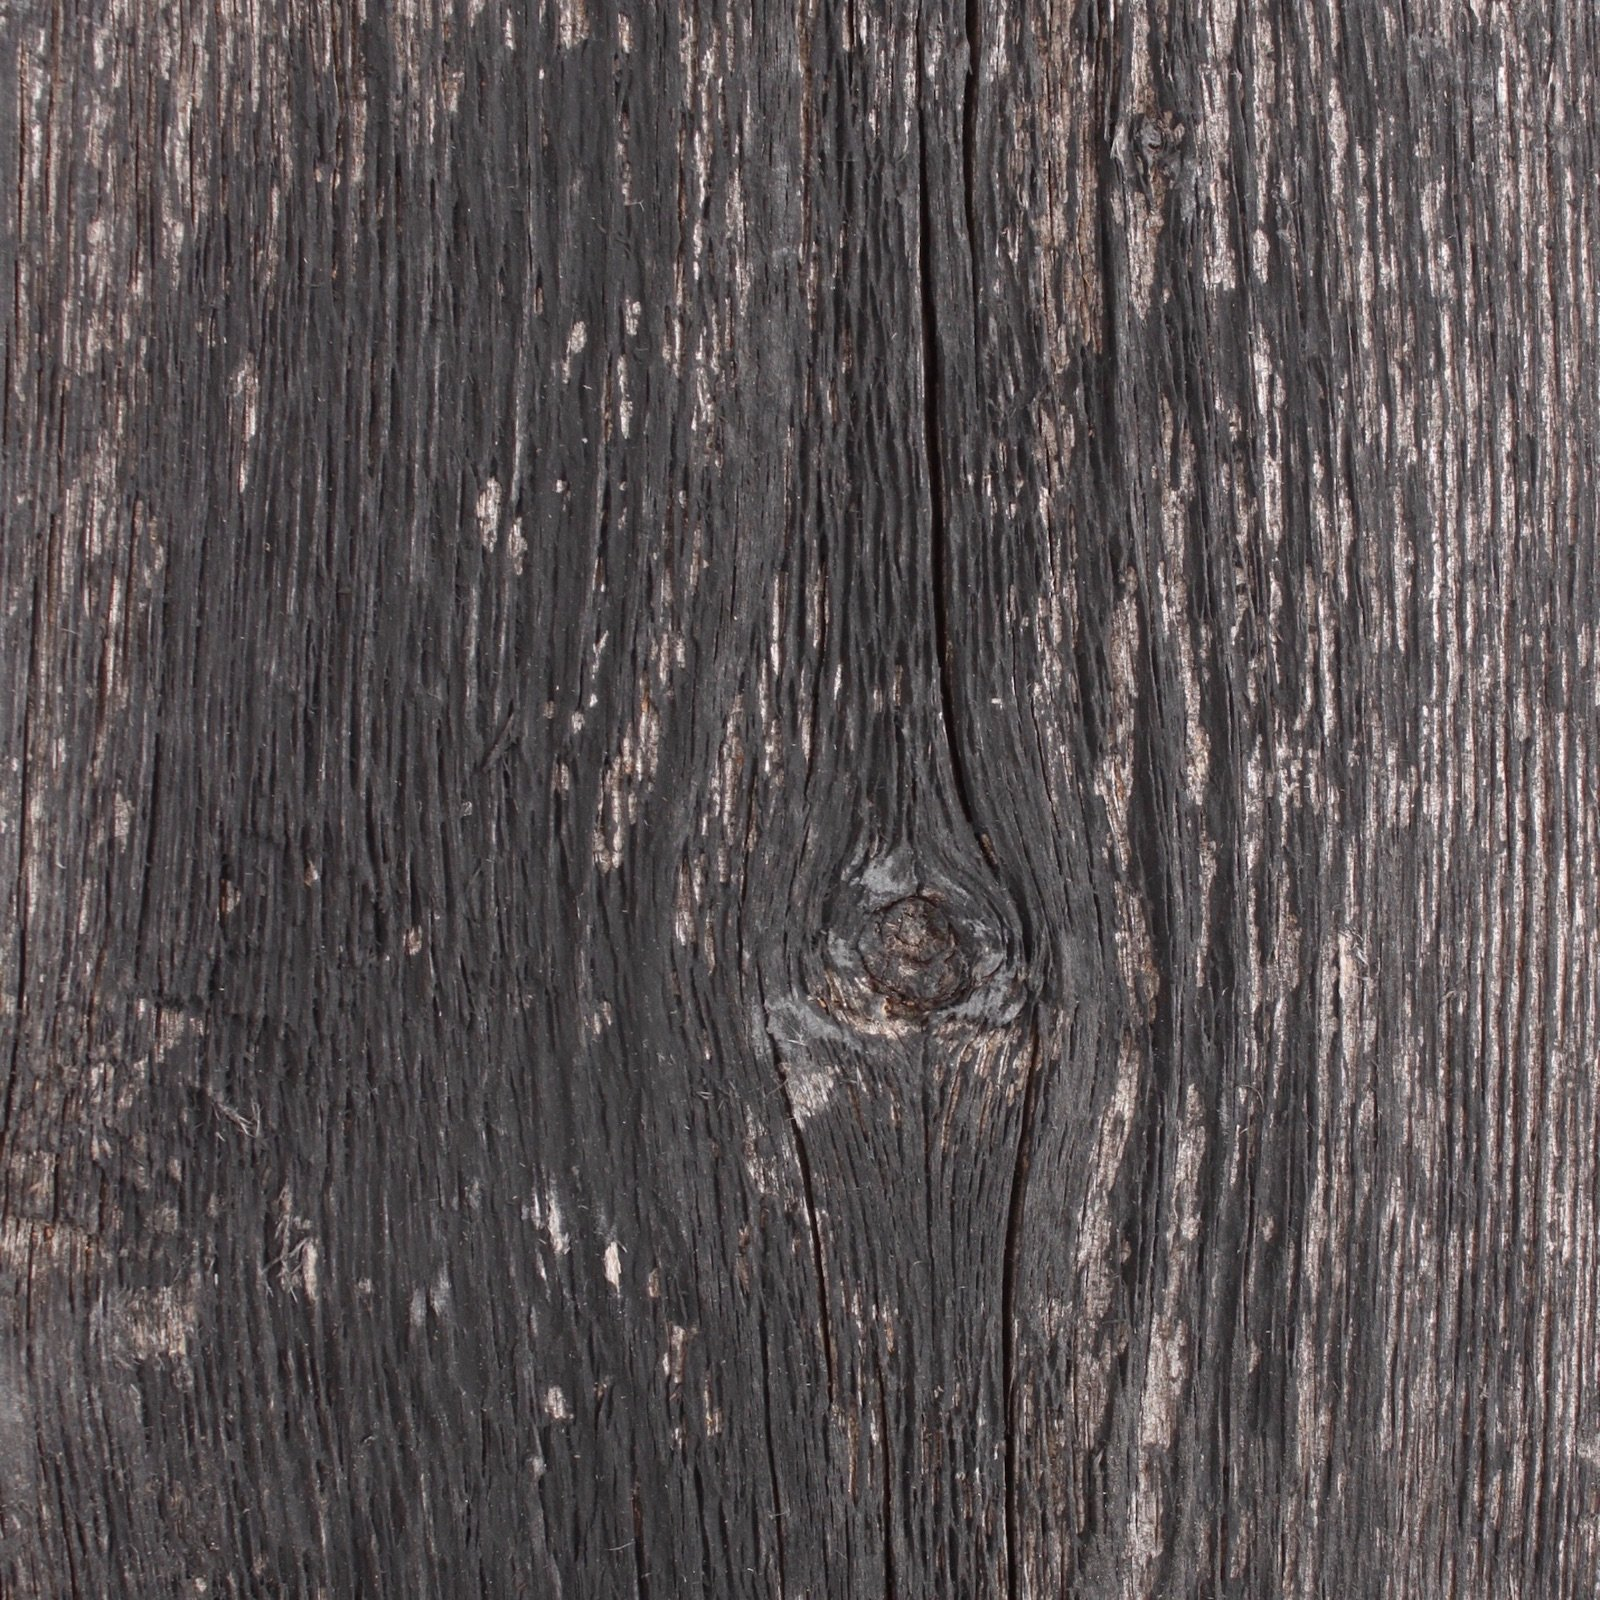 BarnwoodUSA Rustic 12 by 16 by 2 Inch Old Wooden Cross - 100% Reclaimed Wood (smoky black)